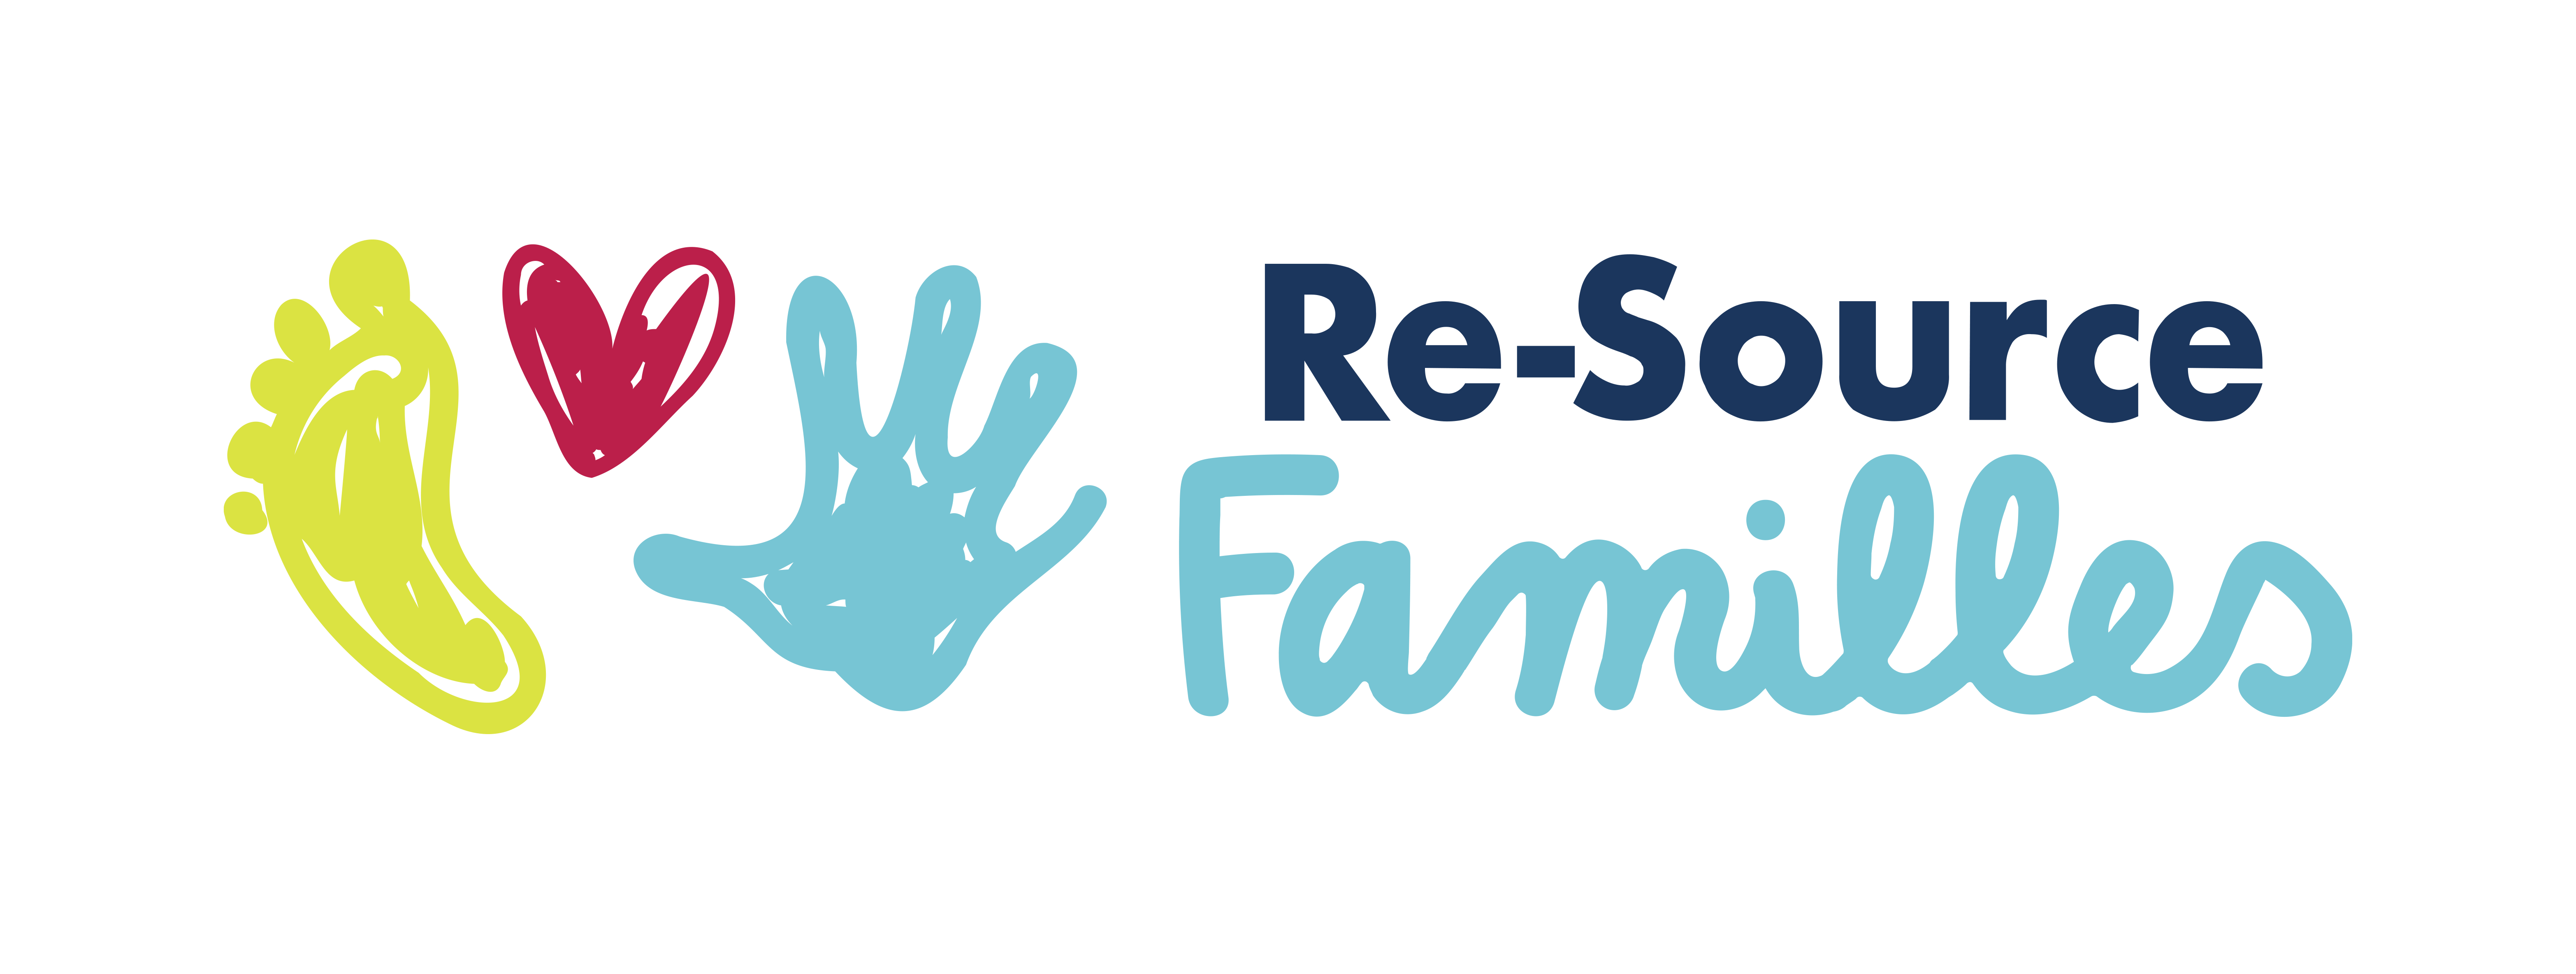 Re-Source Familles